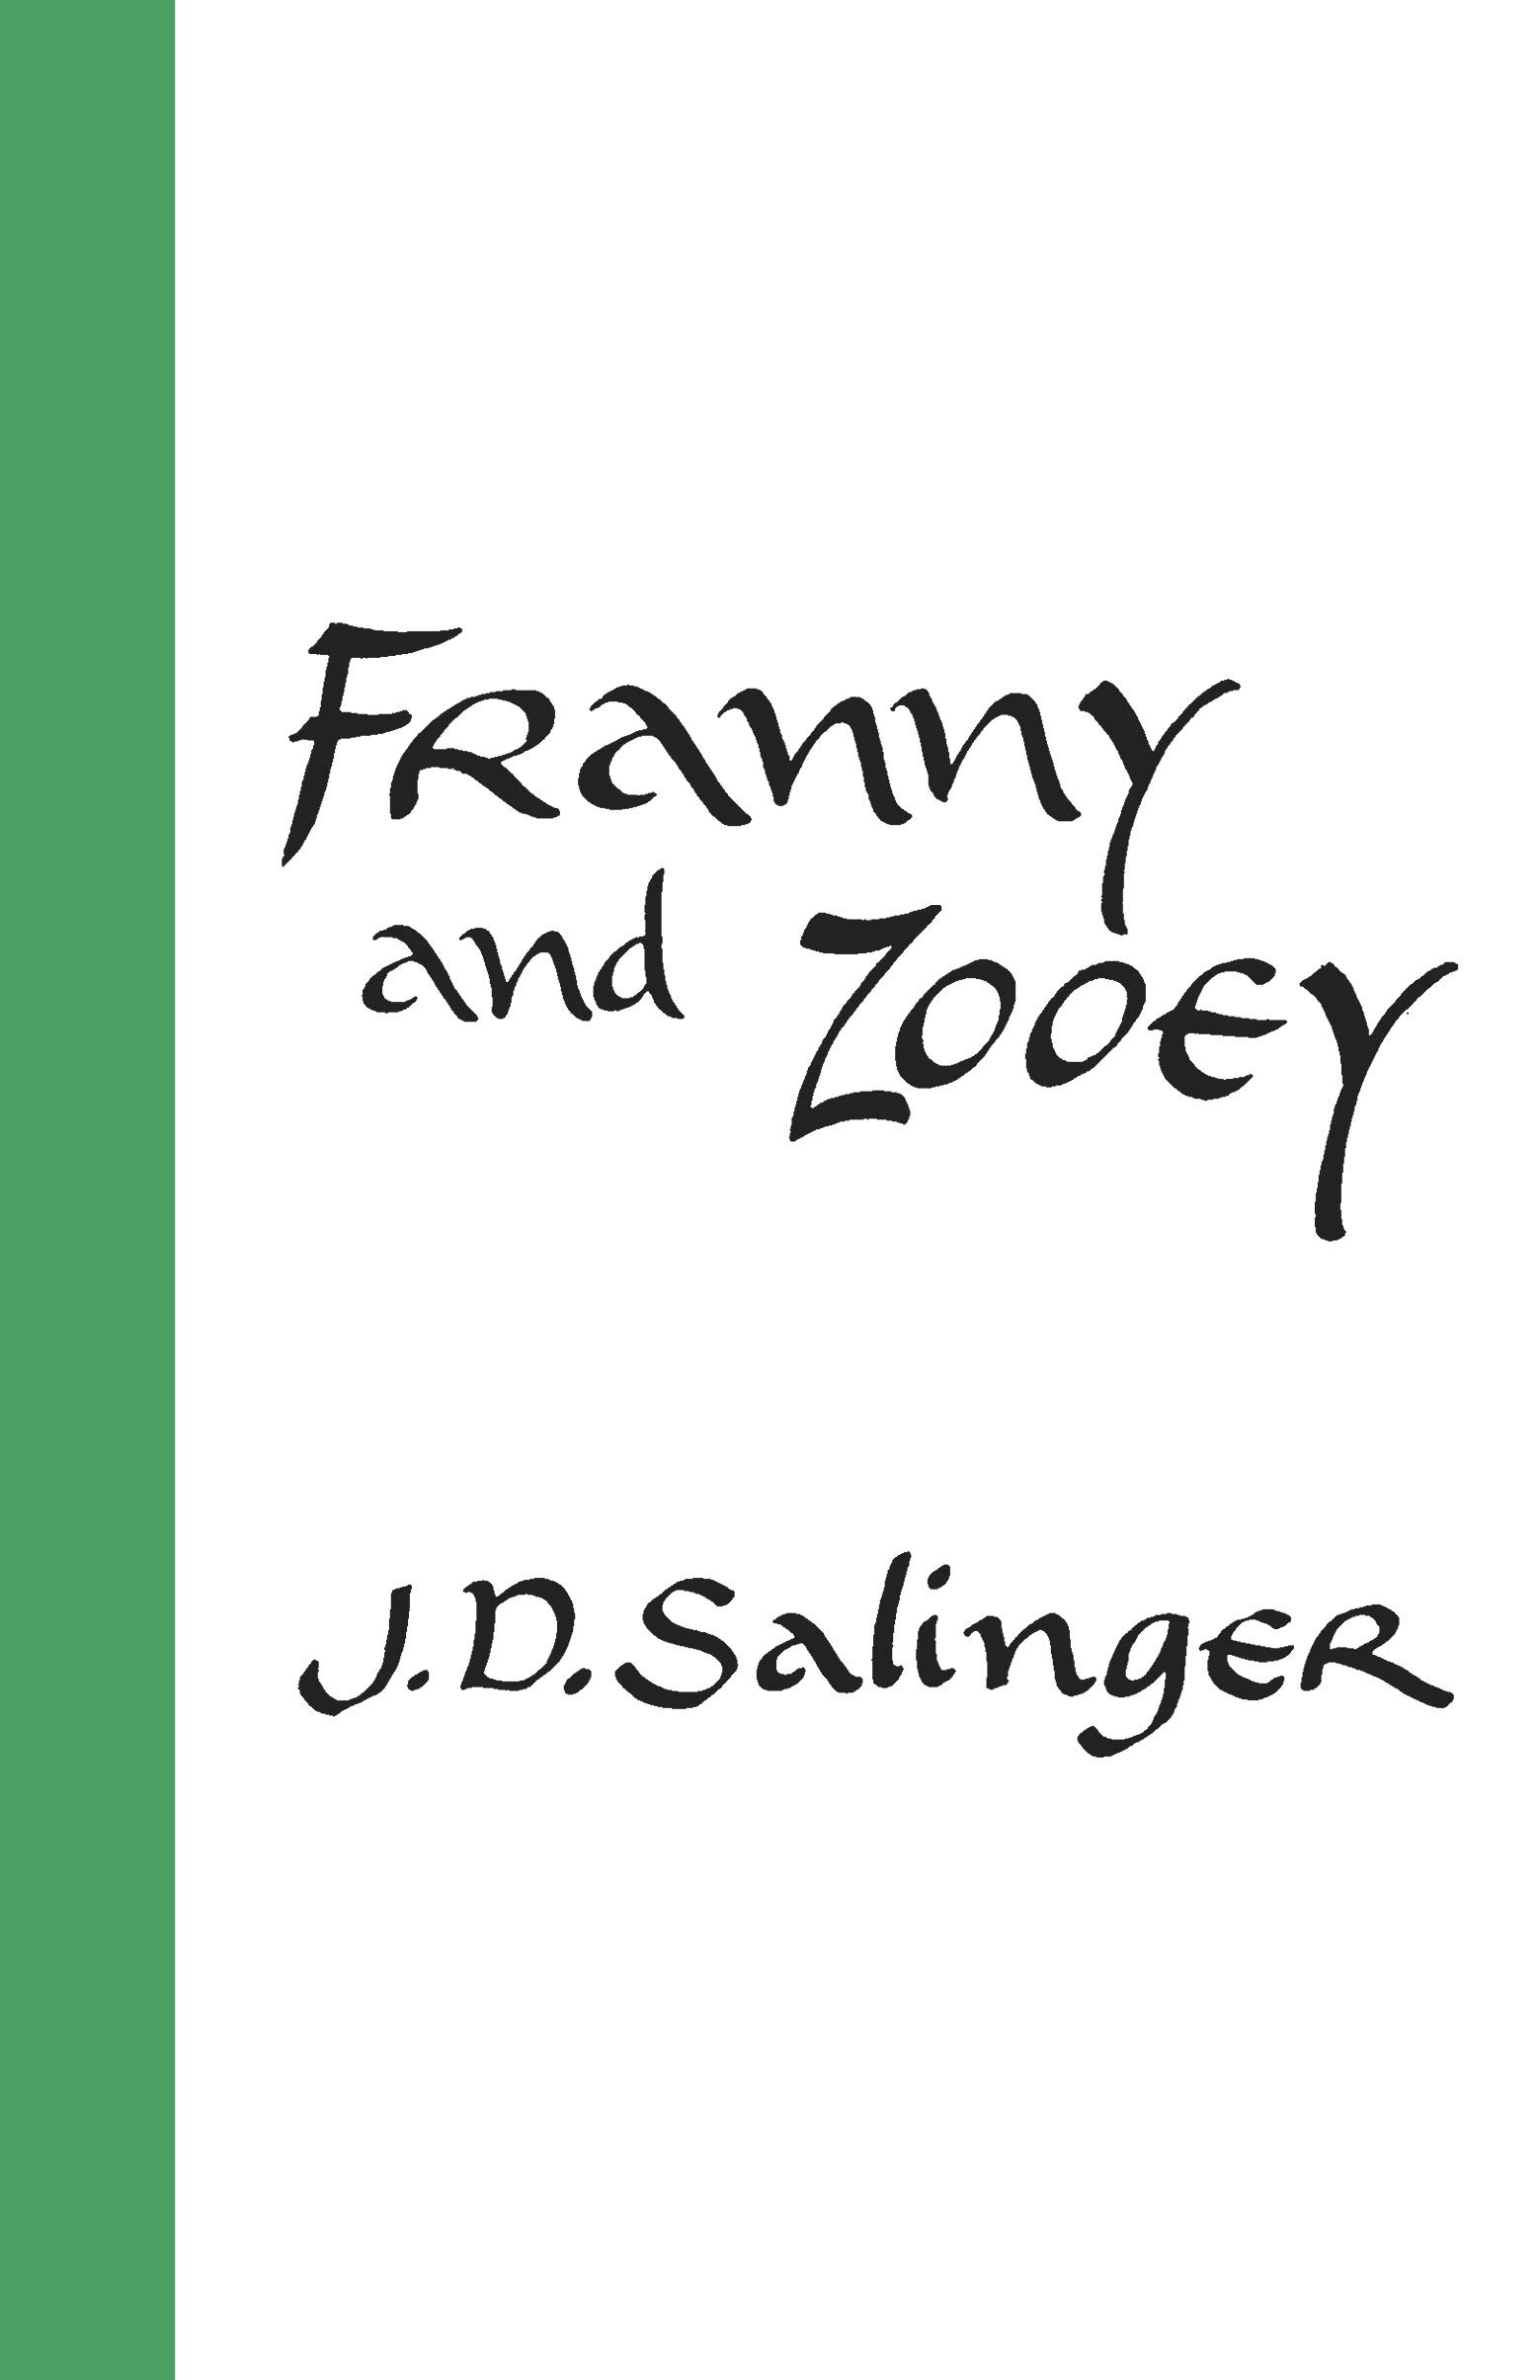 J.D. Salinger's Books Set For Digital Release